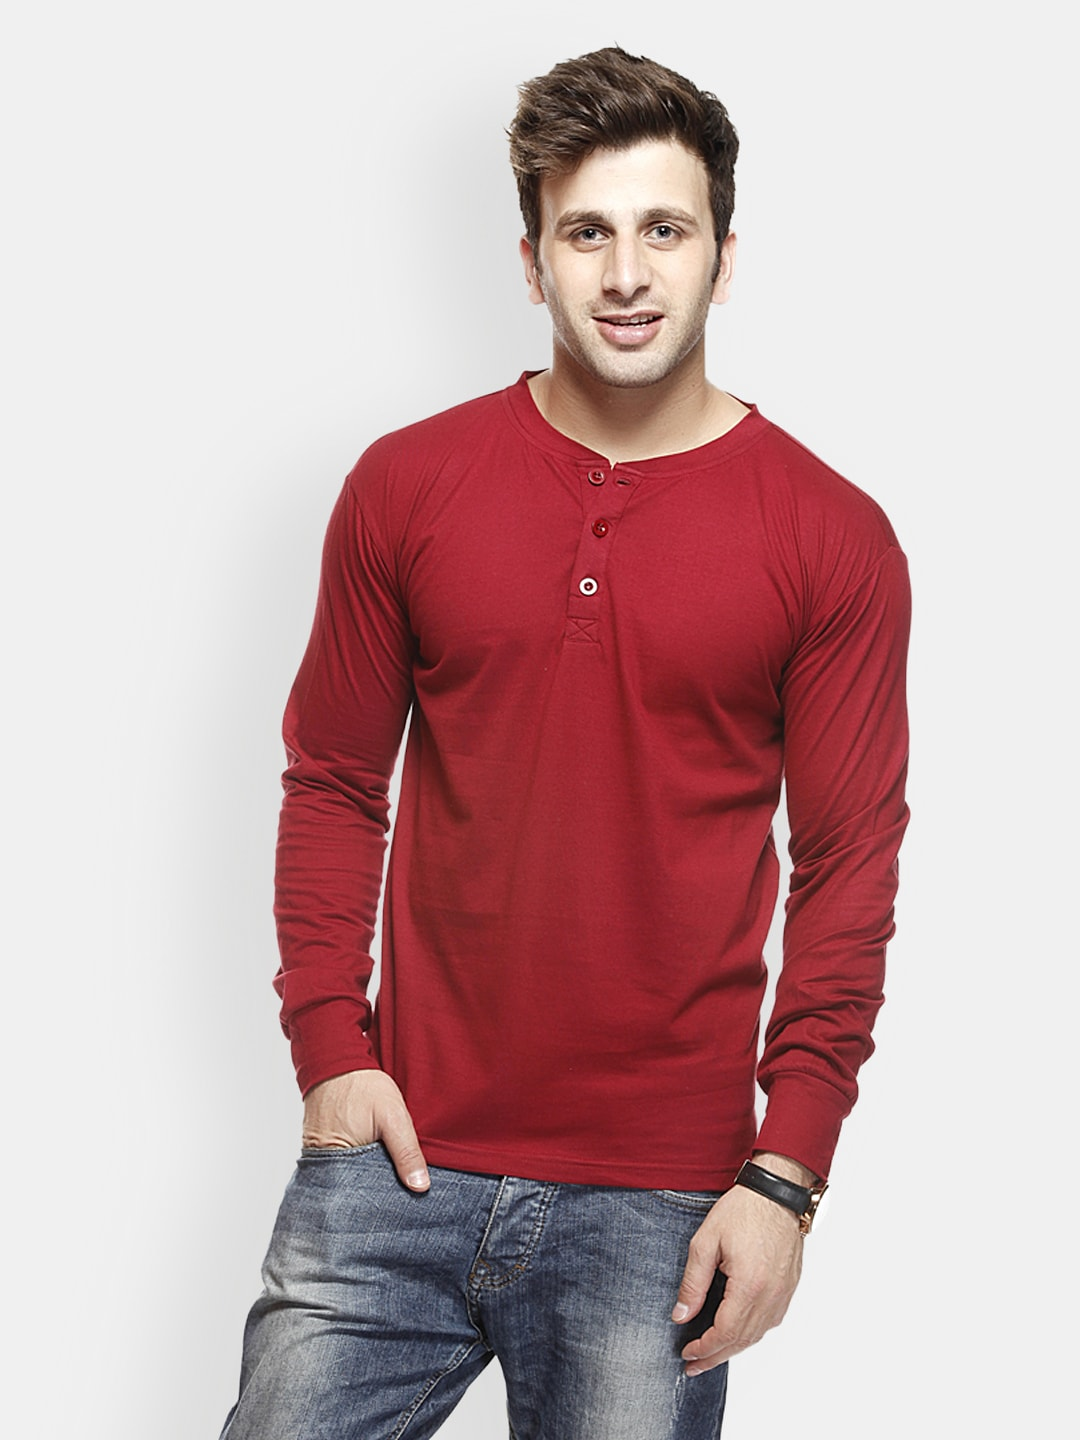 Buy Gritstones Men Maroon T Shirt 289 Apparel For Men